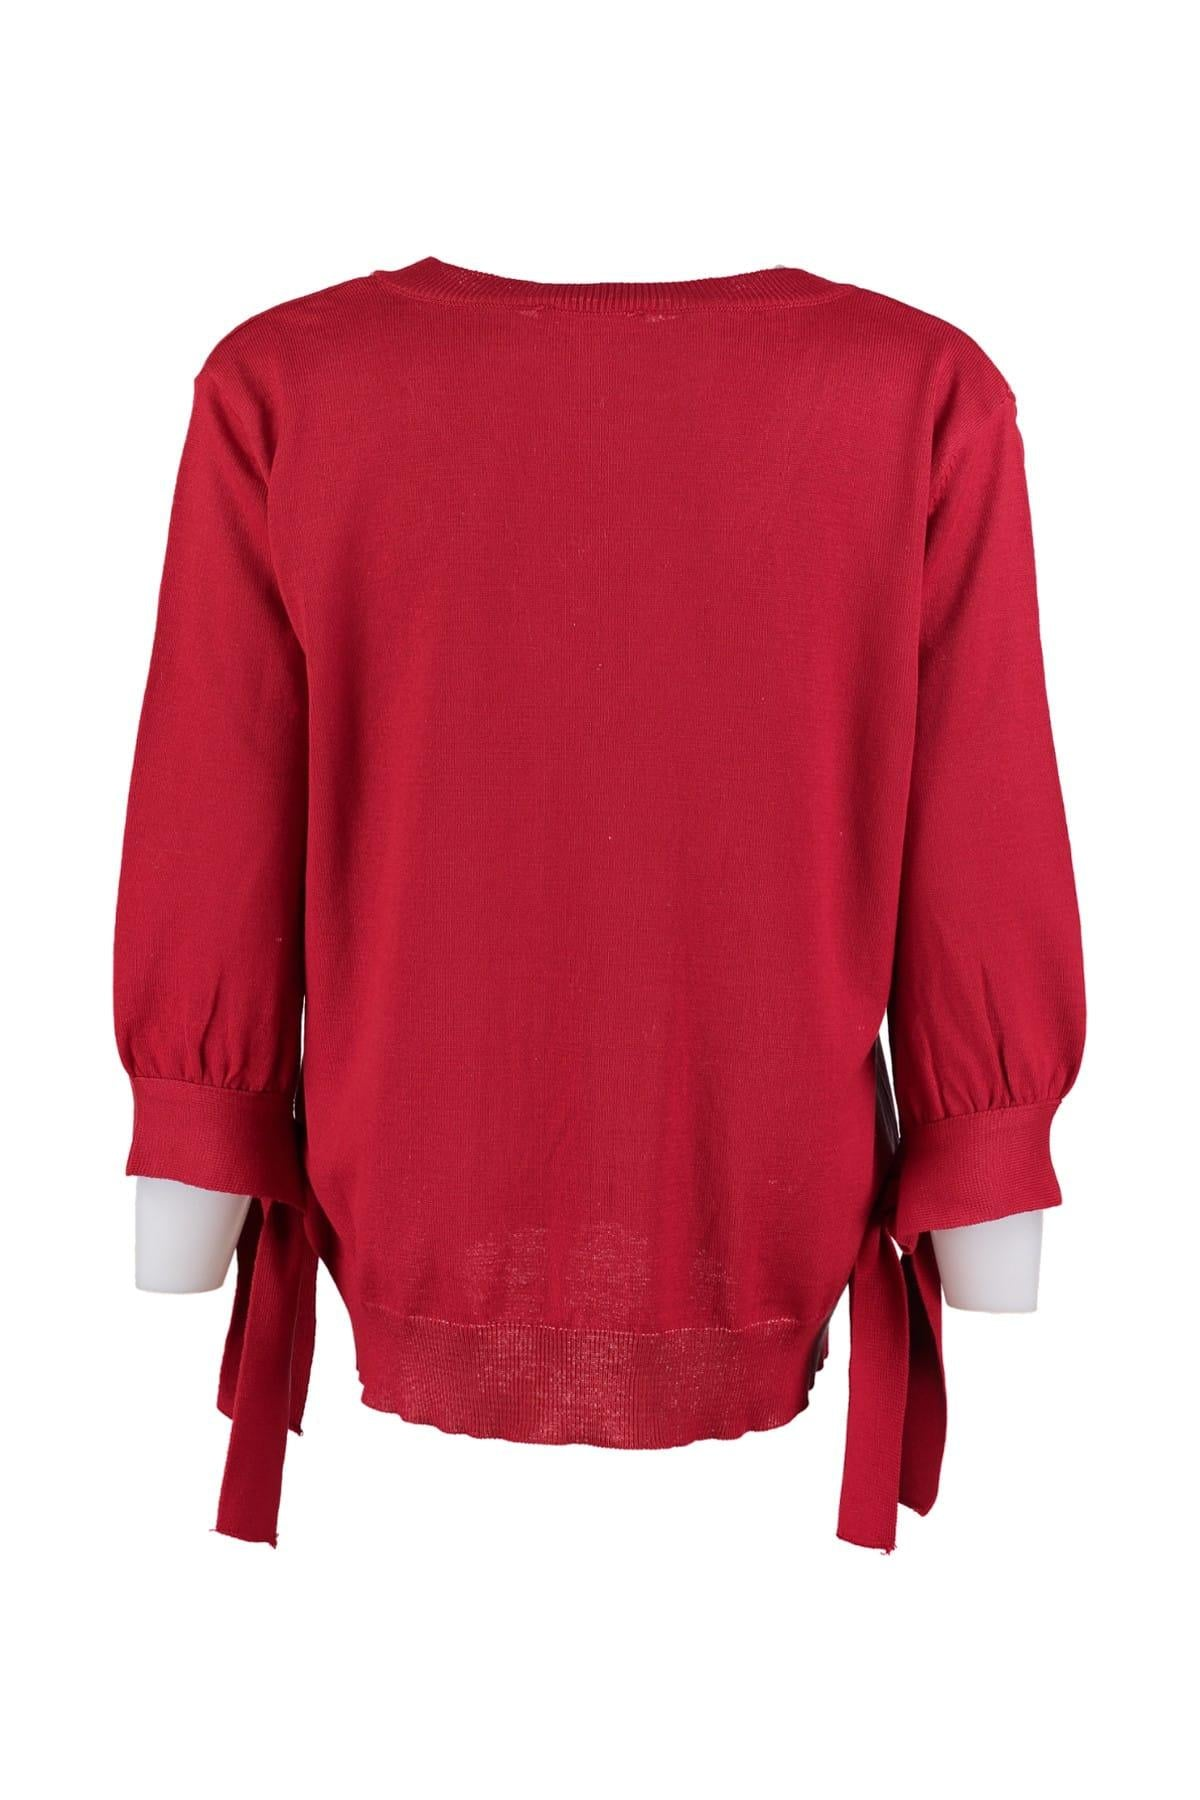 Red V Neck Handle Binding Detaylı Knitwear Sweater TWOAW20DU0012